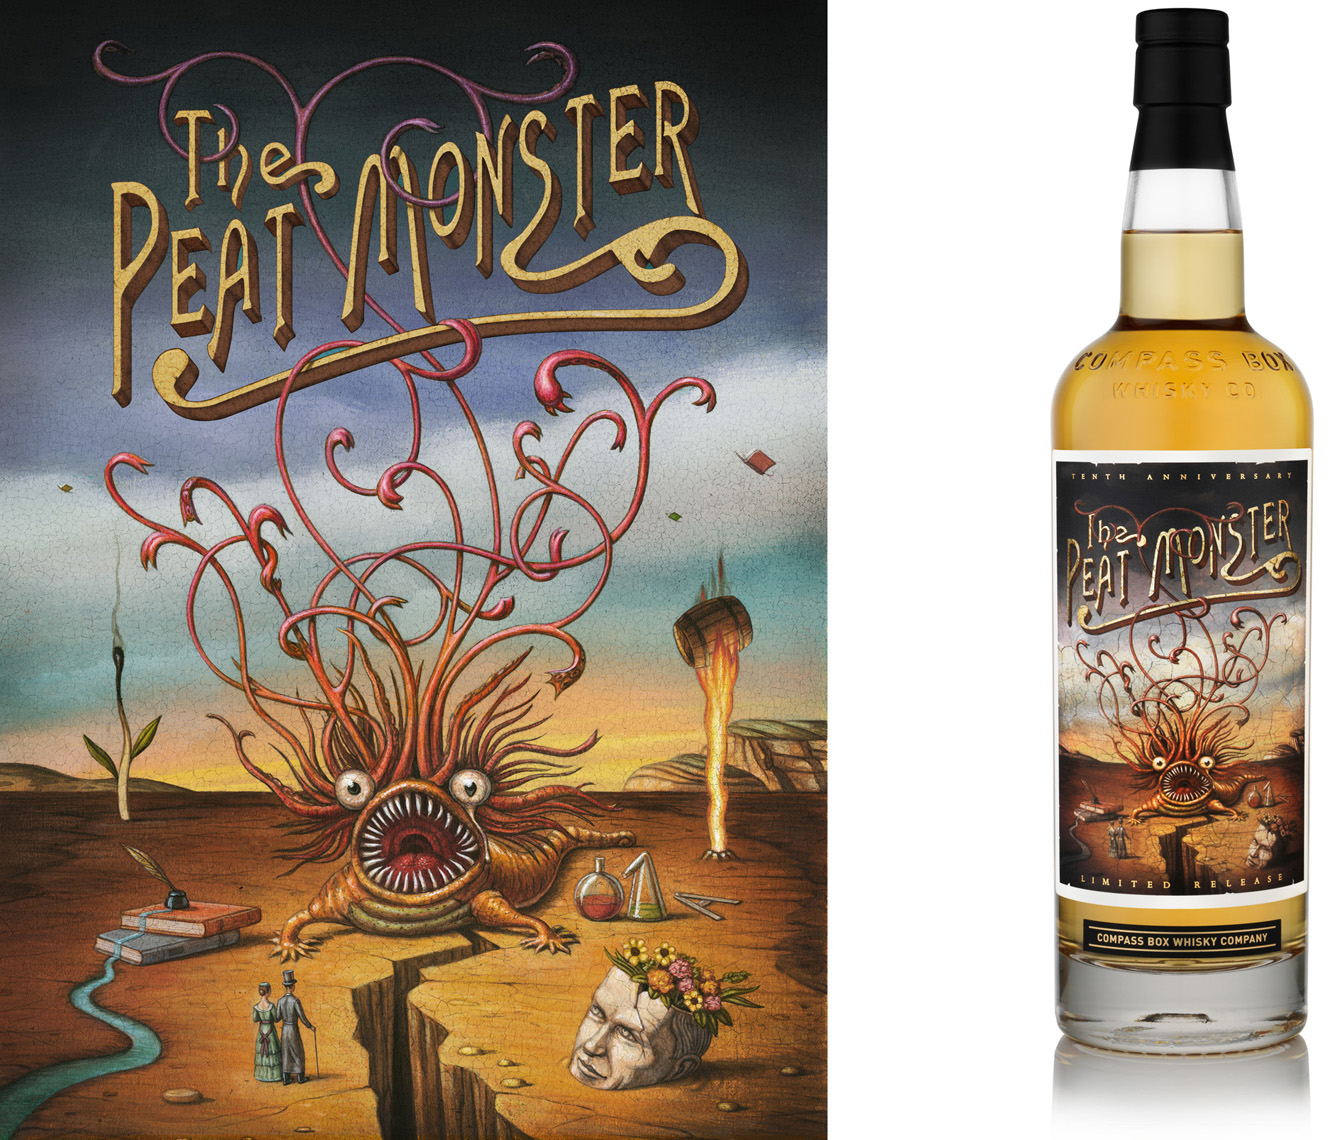 The Peat Monster, Compass Box